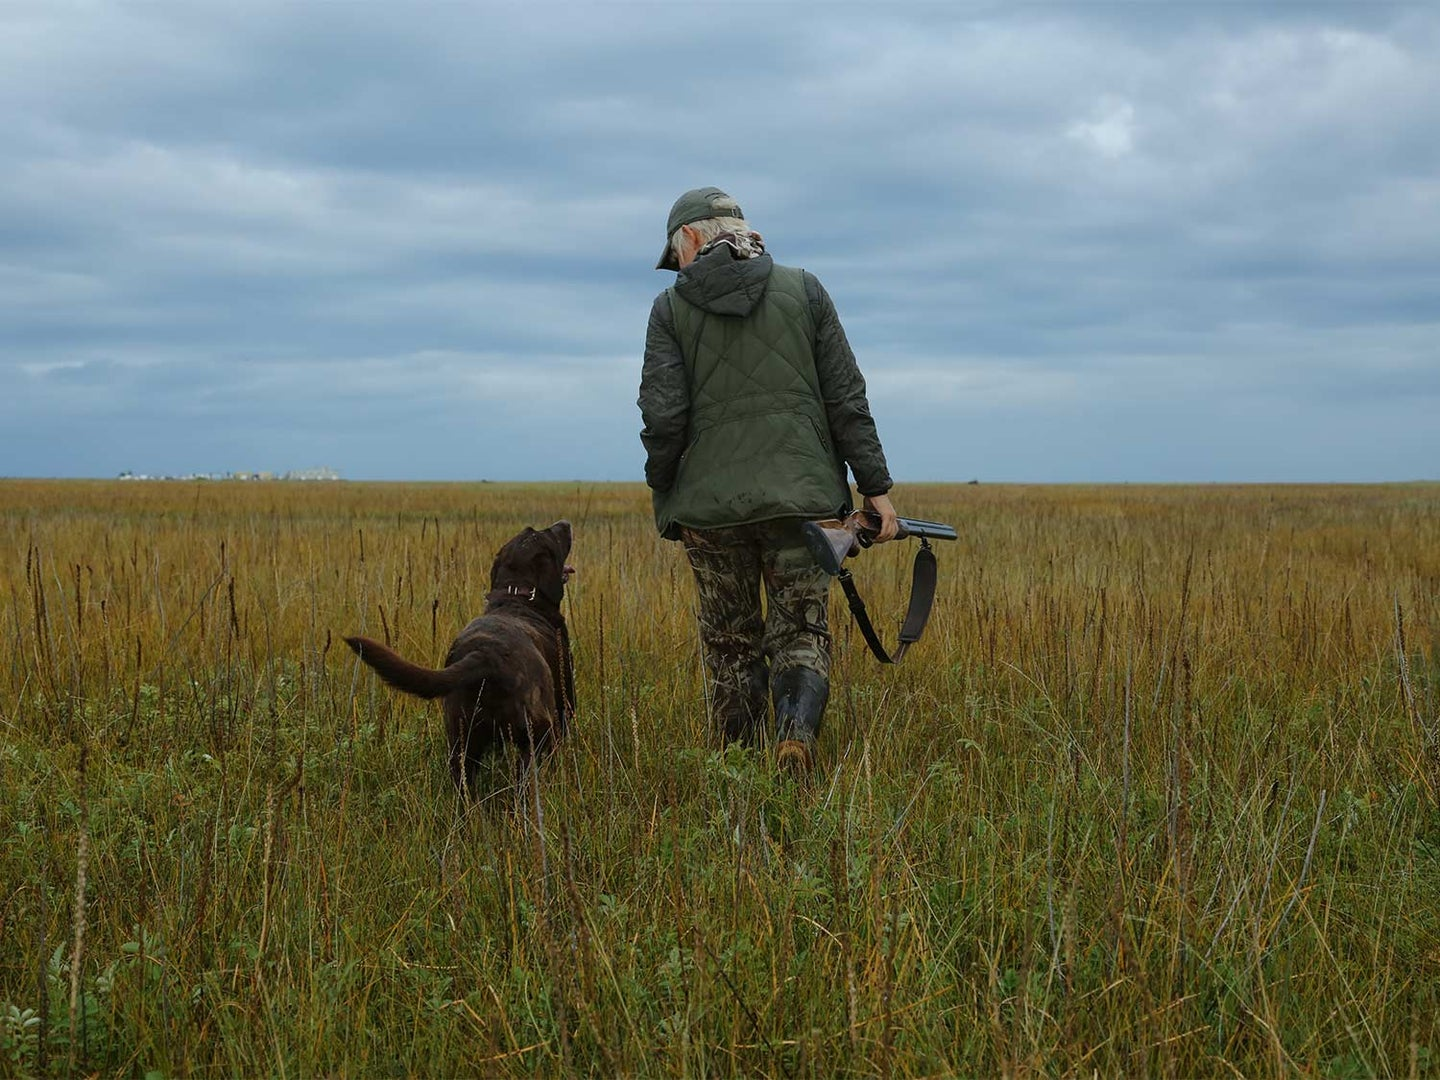 A hunter in camo and jacket holds a gun while walking through an open field. A hunting dog walks beside them.